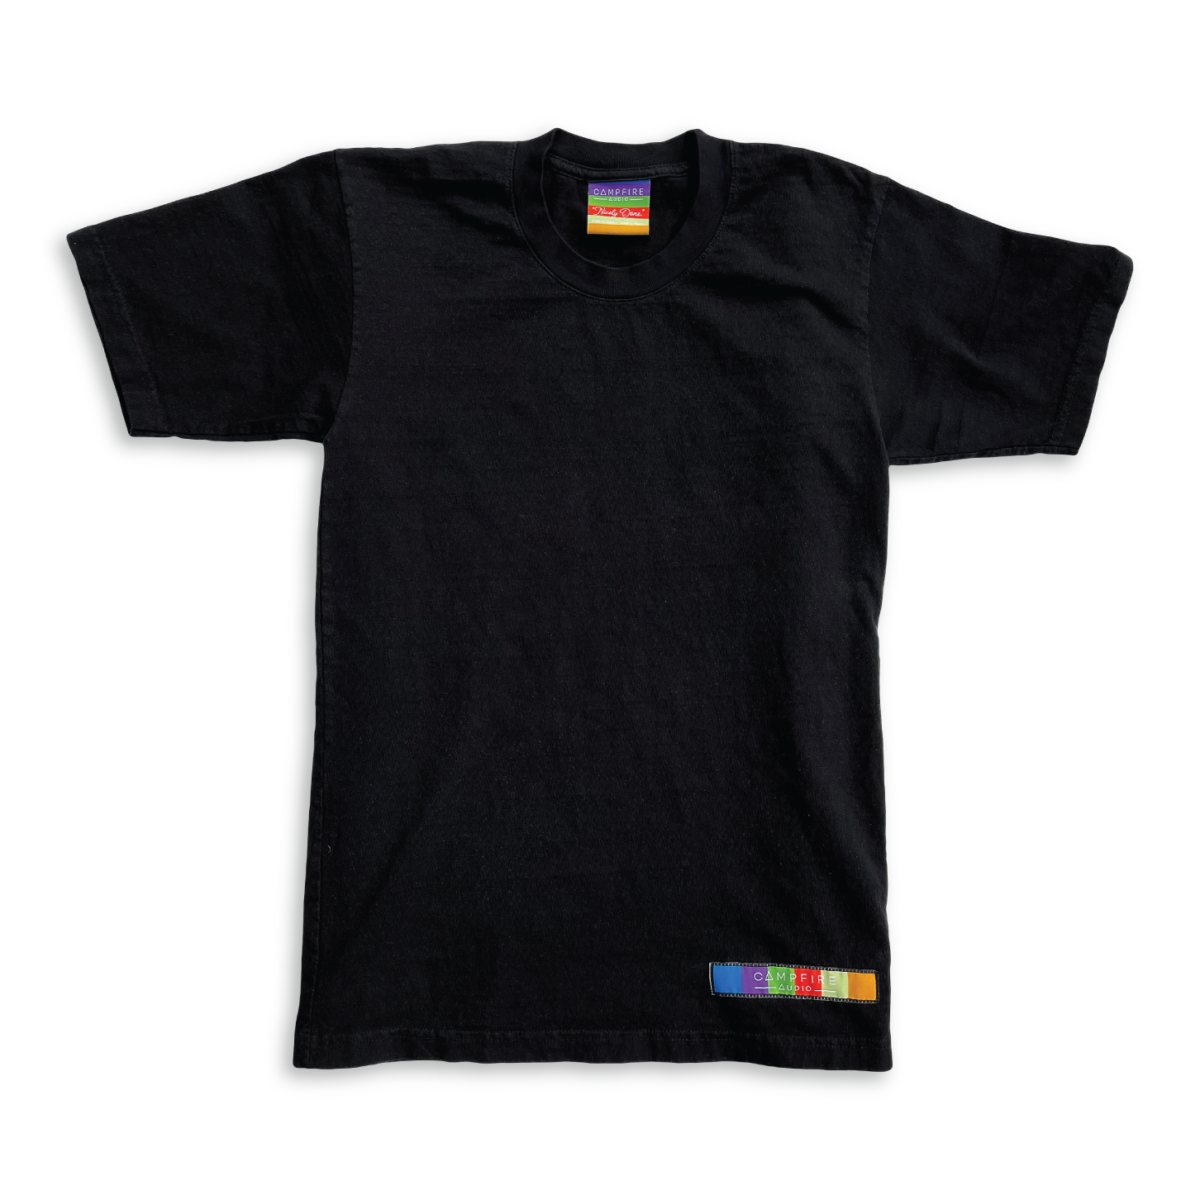 Recycled Cotton Short Sleeve T-Shirt in Black with Campfire Audio Color Block Logo Tag